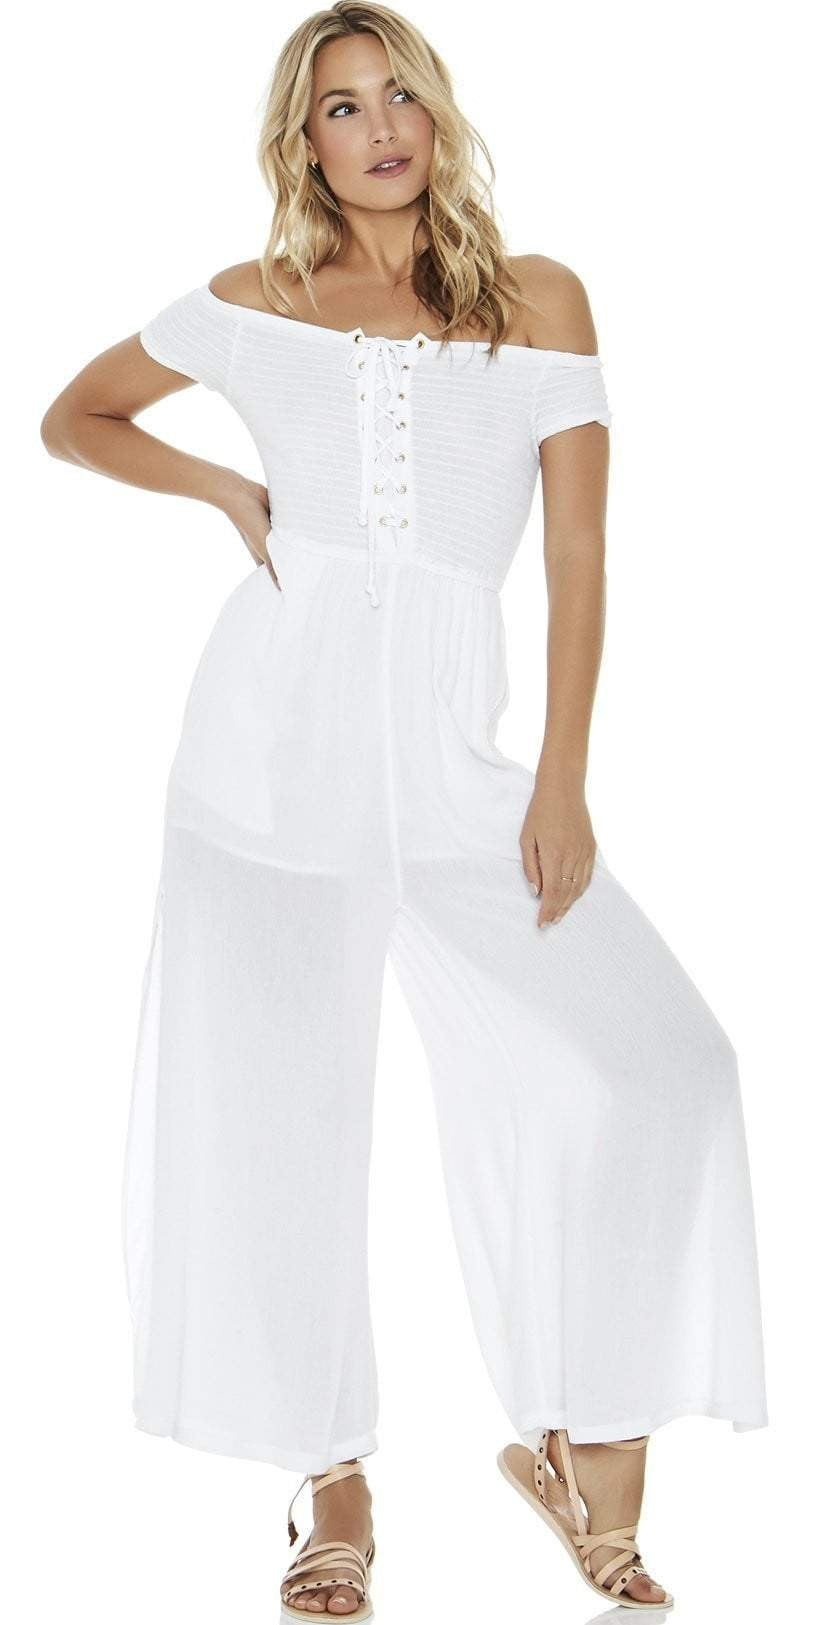 L Space Sao Paulo Romper in White SAPJU18-WHT front view on model